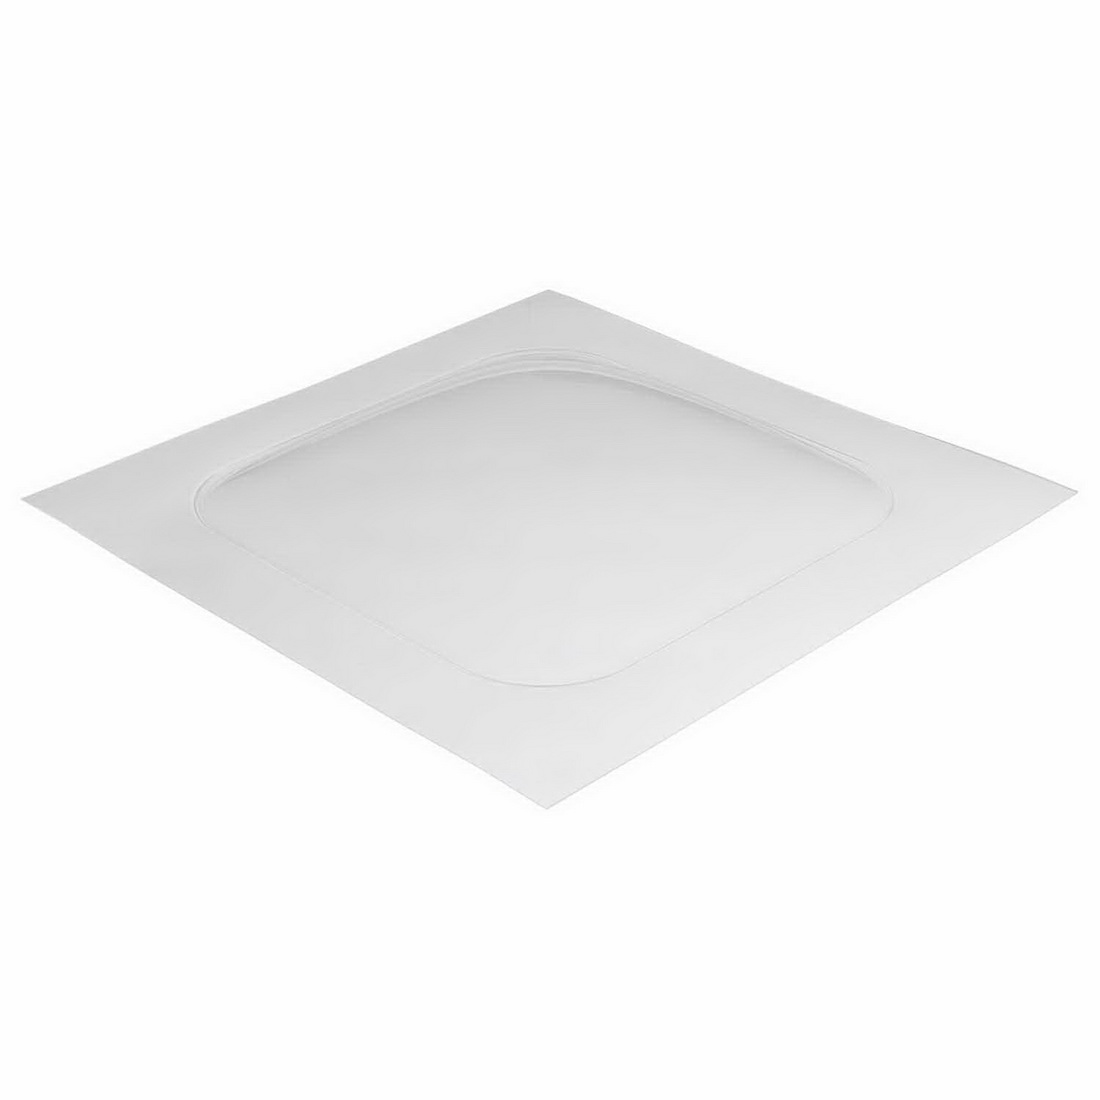 Showerdome Standard Square Bath 700 x 1000 x 1000 mm Clear S700